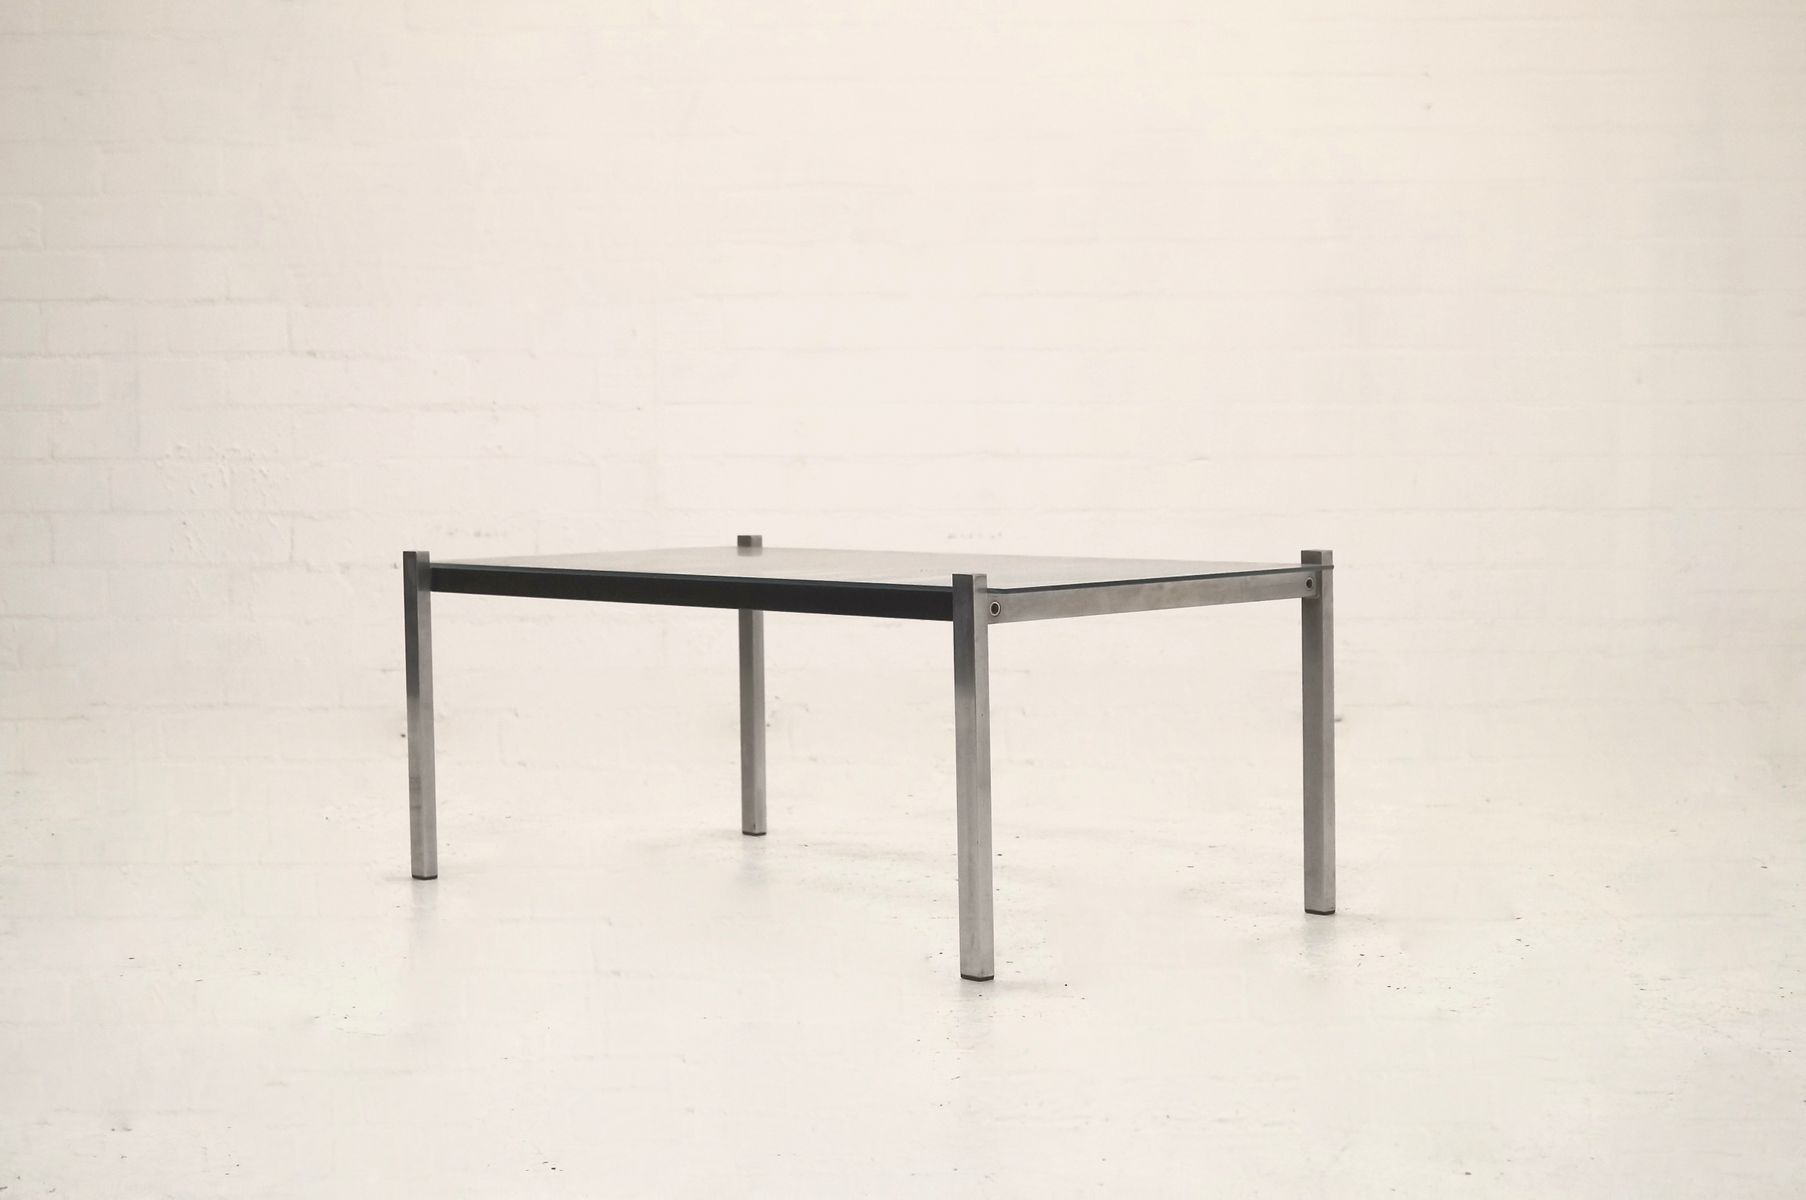 Mid Century Modern Metal and Glass Coffee Table 1960s for sale at